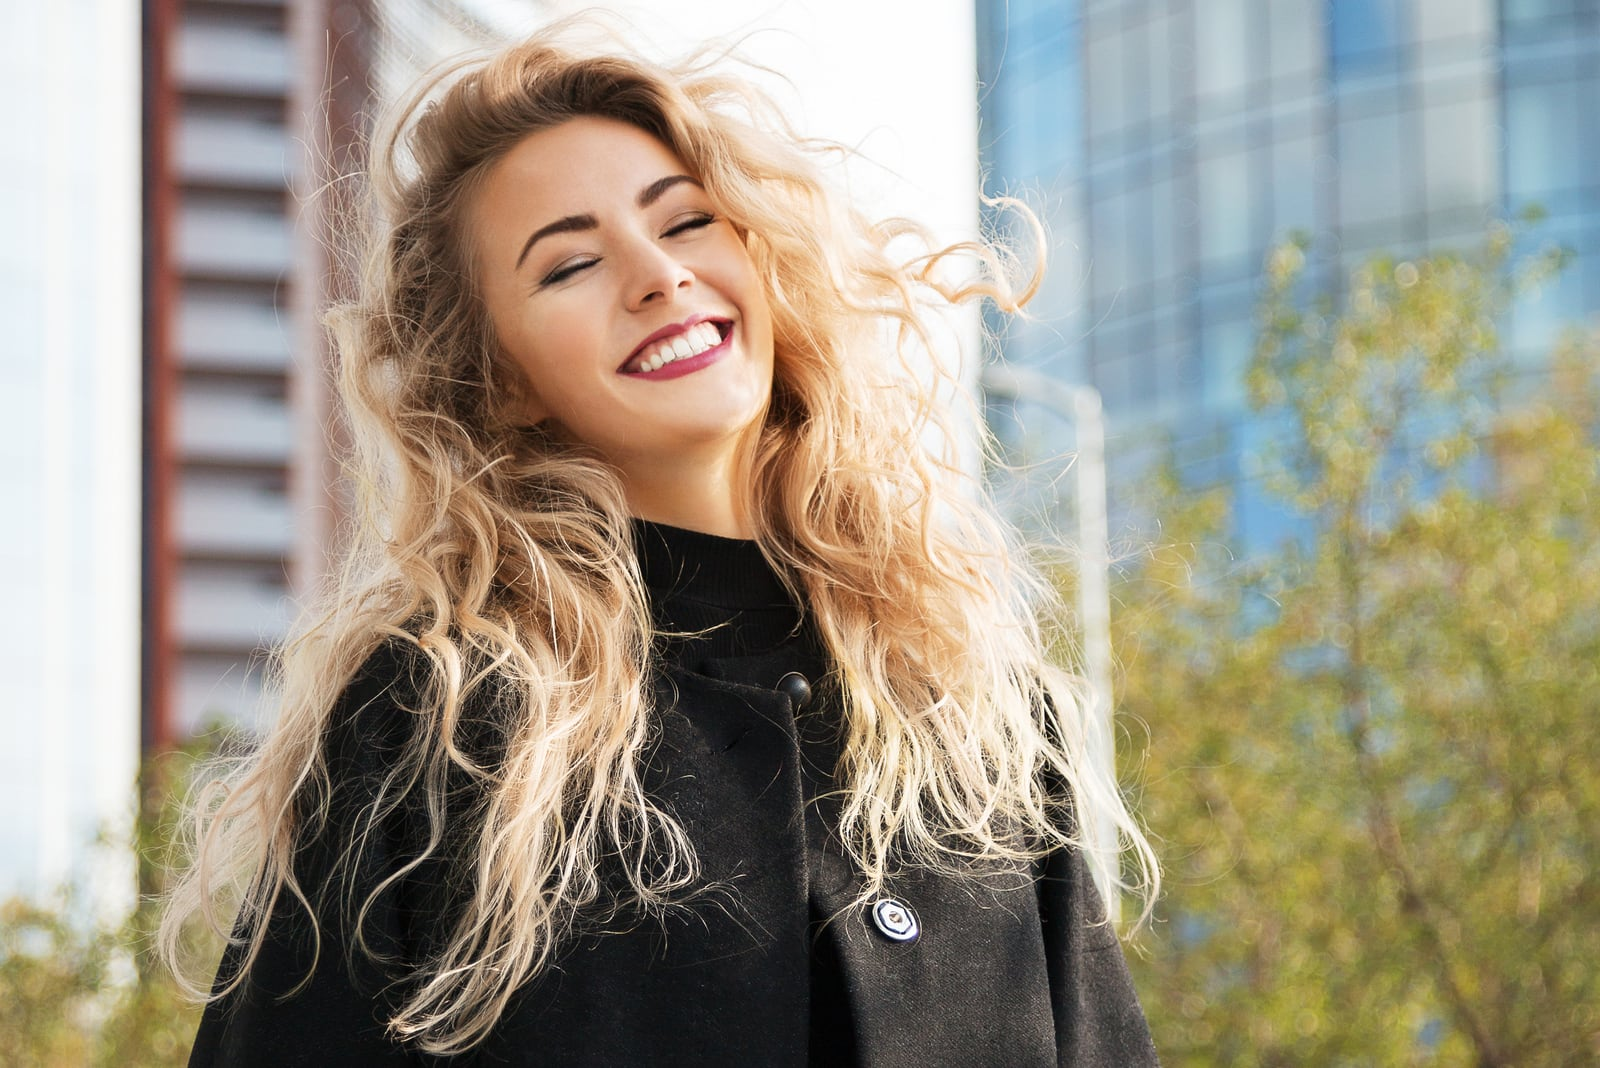 a portrait of a smiling blonde in a black coat